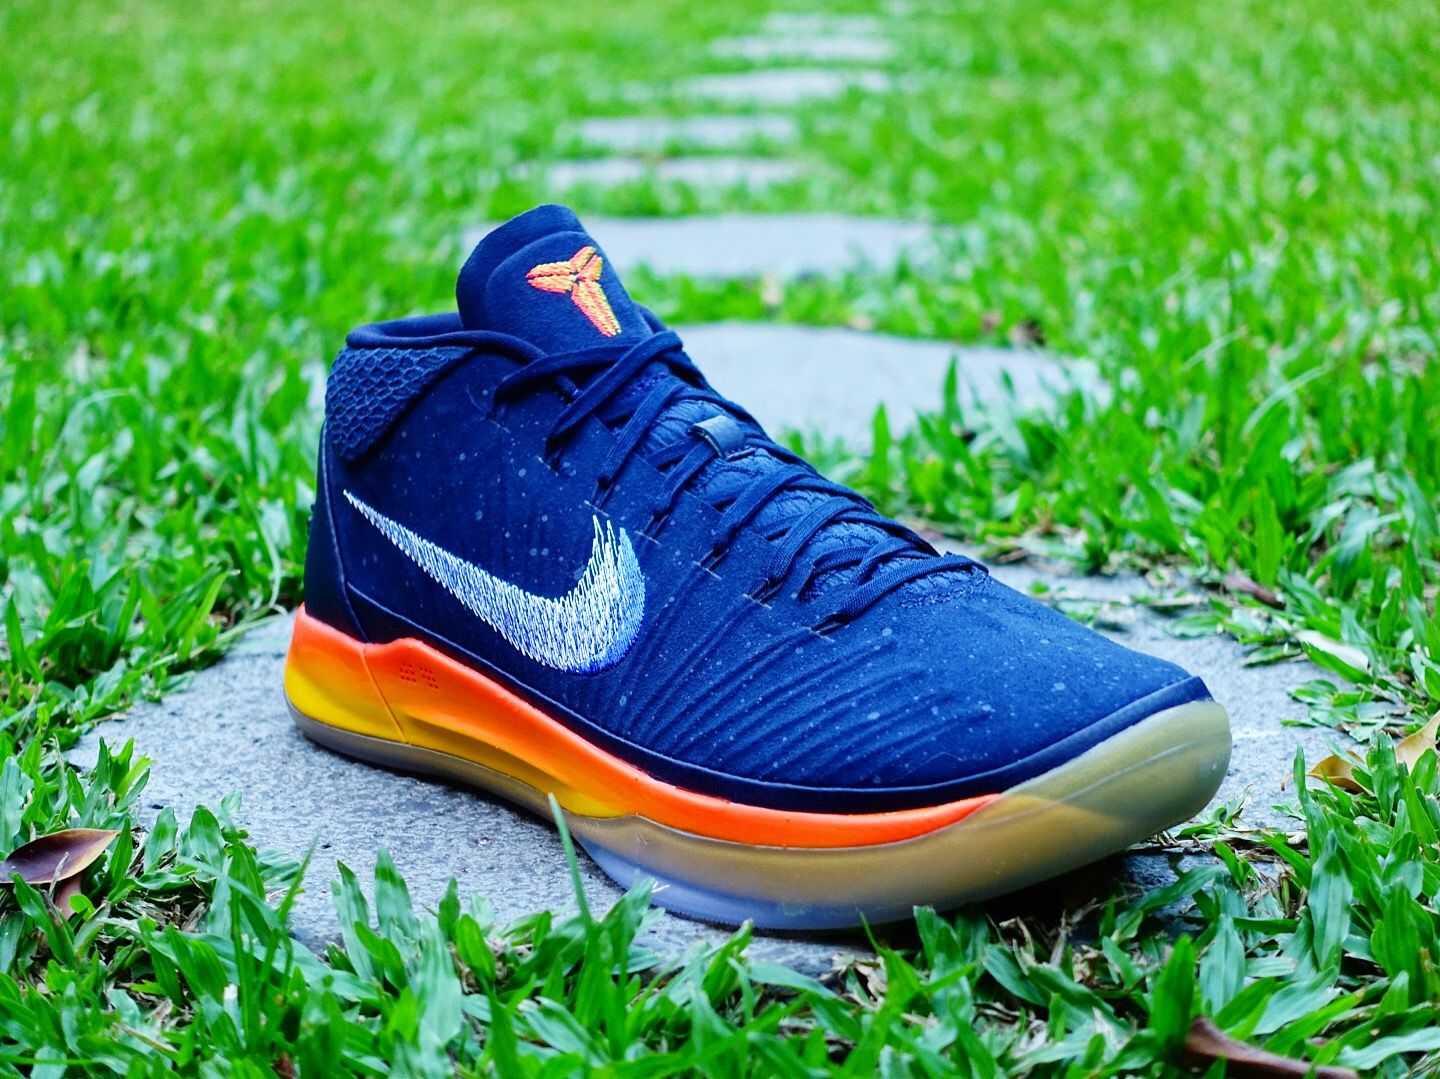 """uk availability 37842 8ff53 """"Rise"""" from the death. Mamba mentality is continuing... ••• Nike Kobe AD EP  Mid """"Rise"""" 922484-401 Available now at id4shoes."""